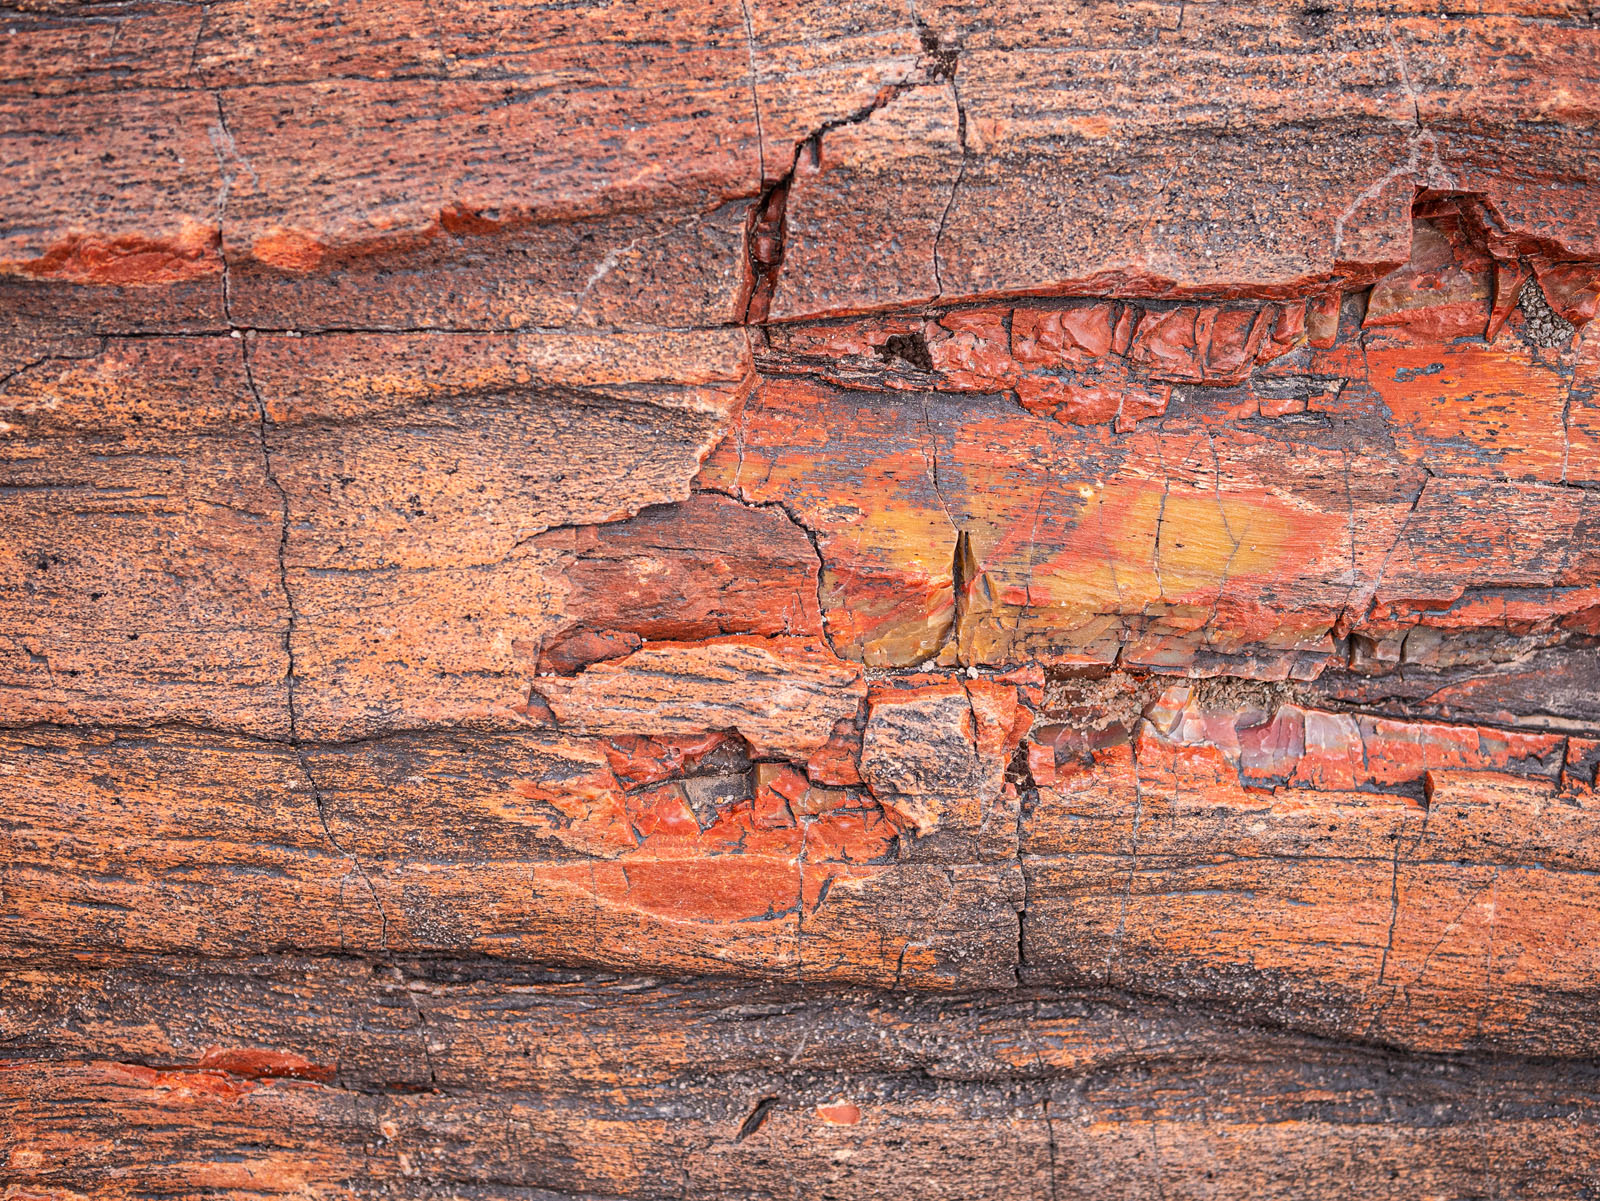 CO_Vacationmoon_PetrifiedWoodMacros-1010491.jpg